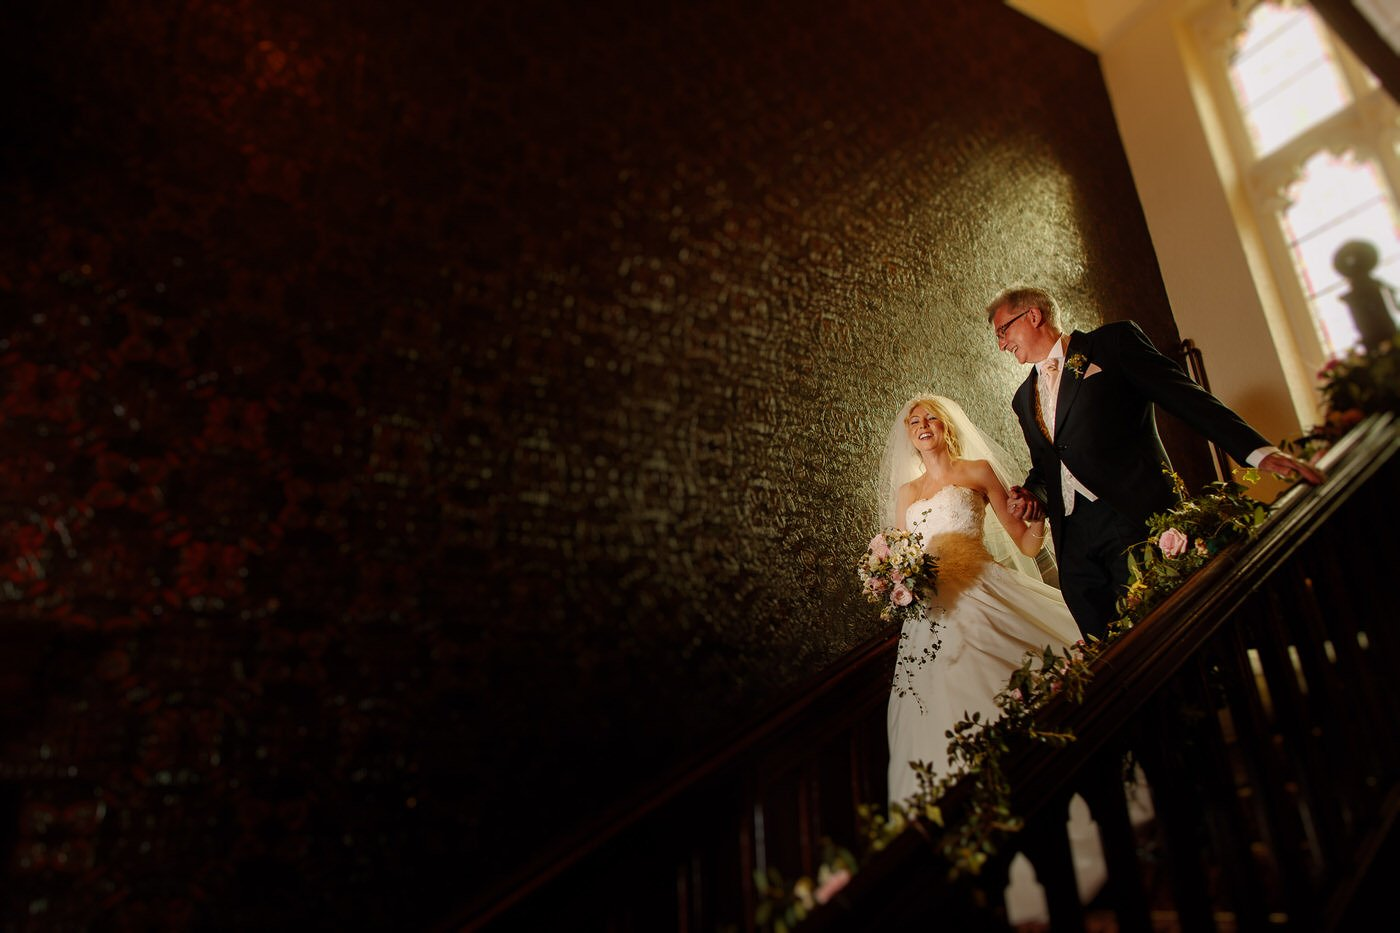 The bride and her Father make their entrance at Tyn Dwr Hall